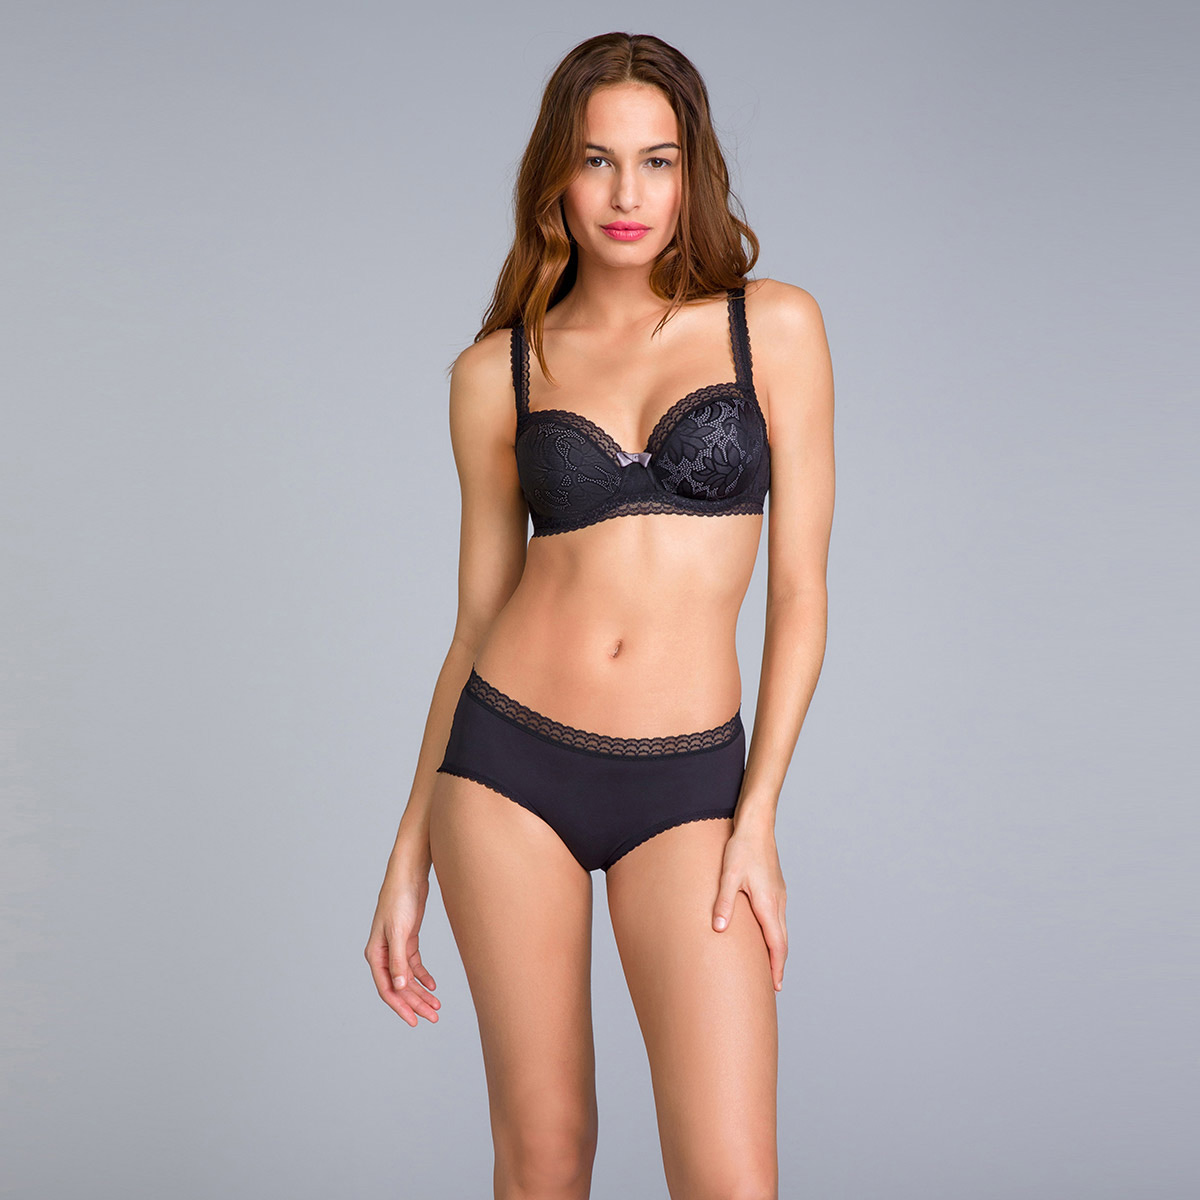 Balcony Bra in Black Lace - Invisible Elegance - PLAYTEX